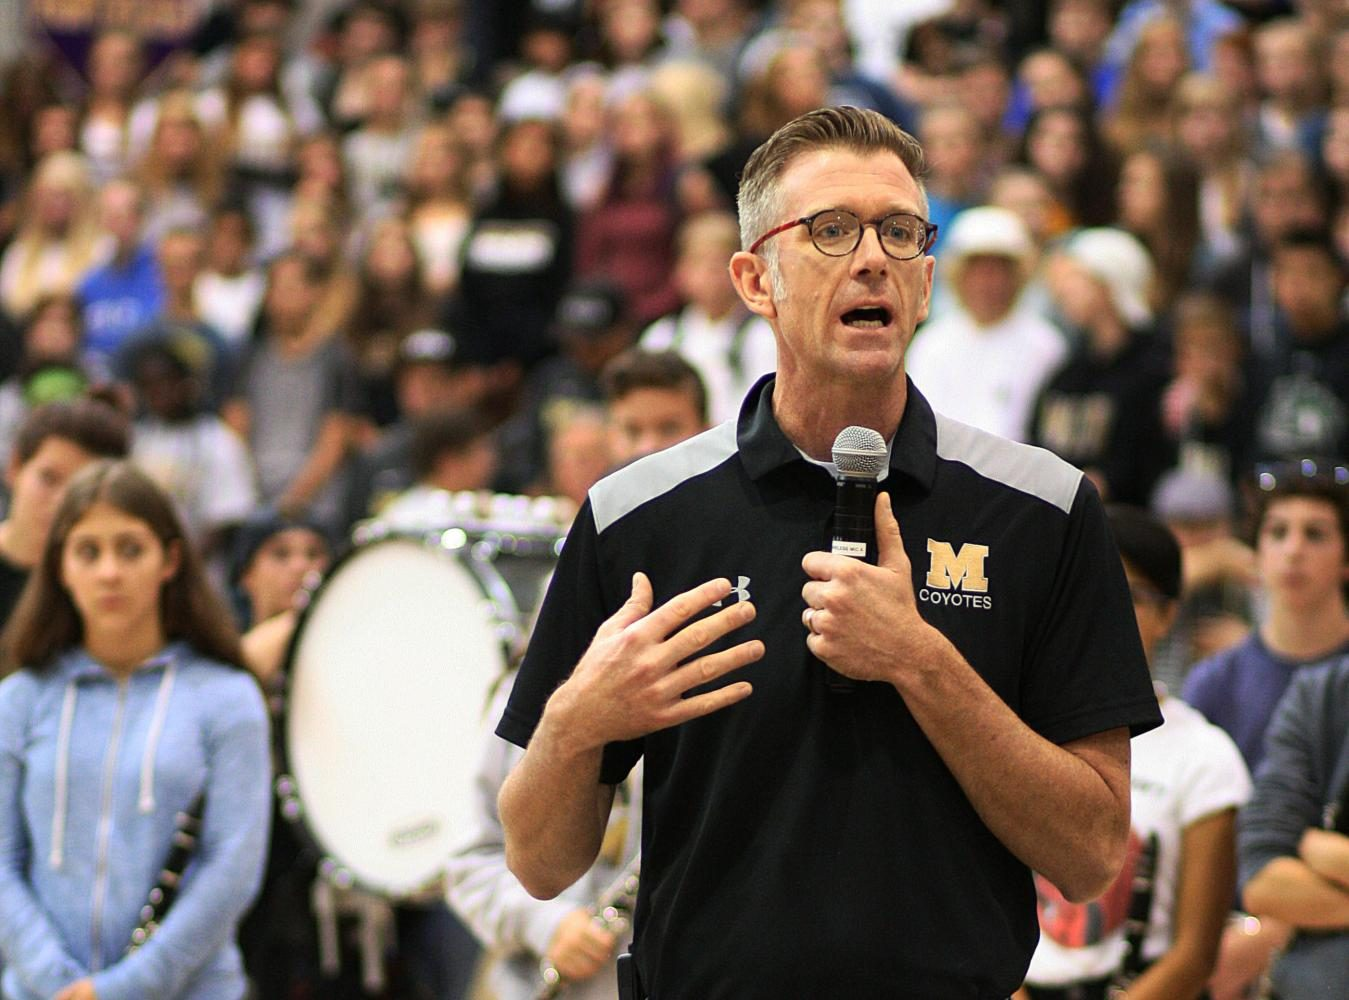 Principal+Neil+Anderson+addresses+students+during+the+Homecoming+pep+assembly+on+Sept.+8+about+the+reasoning+behind+safety+changes+at+football+games.%0A